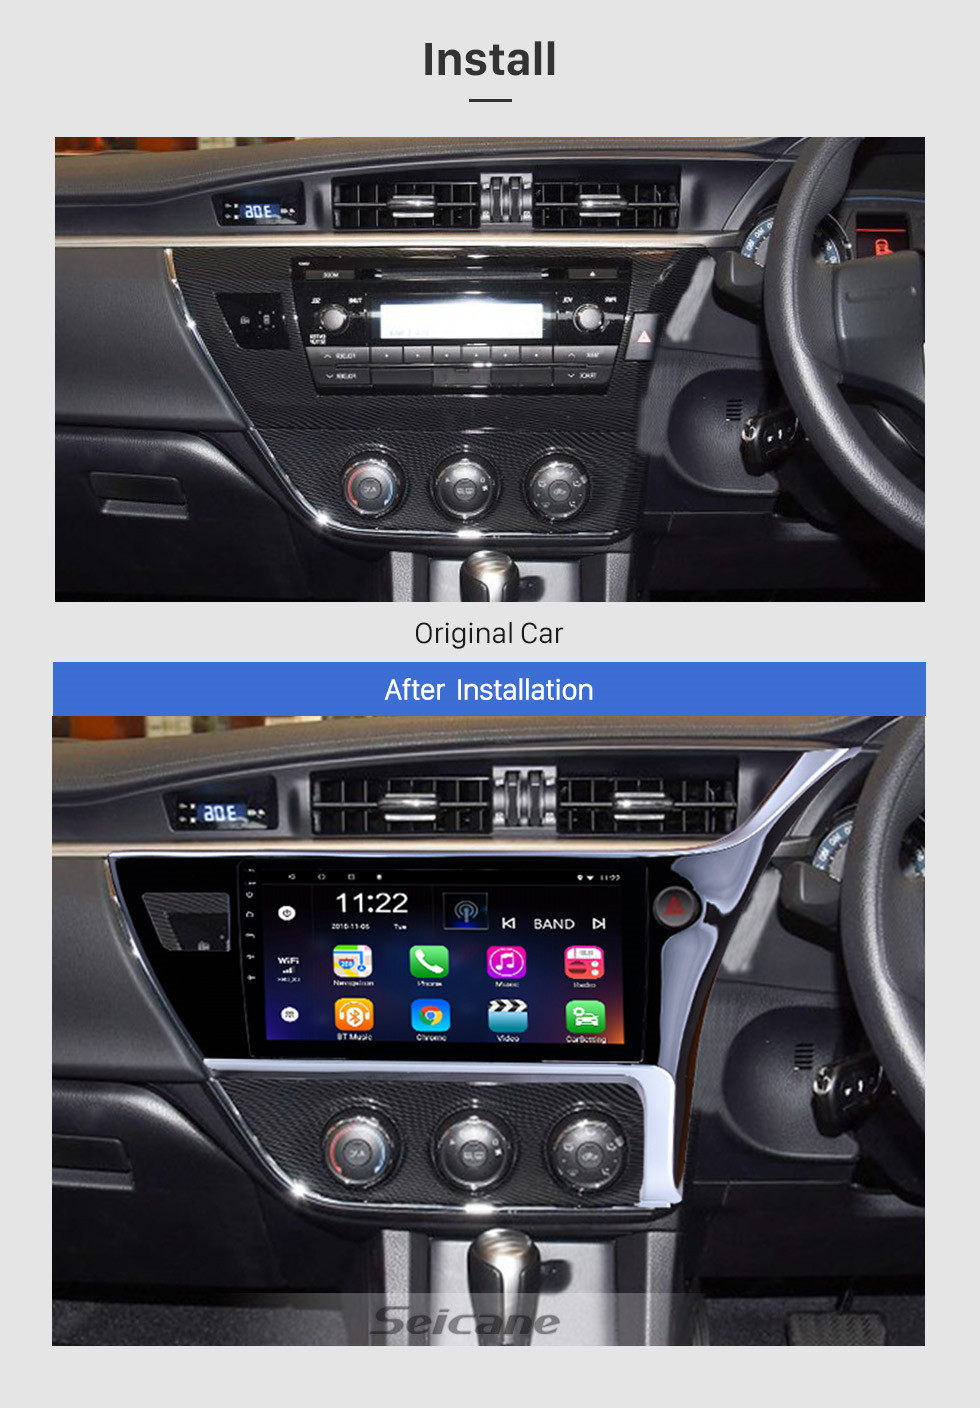 Seicane 10.1 inch Android 8.1 2017 Toyota Corolla Right Hand driving Car Head unit HD Touchscreen Radio GPS Navigation System Support 3G Wifi Rear View Camera Video Carplay Bluetooth DVR OBD II